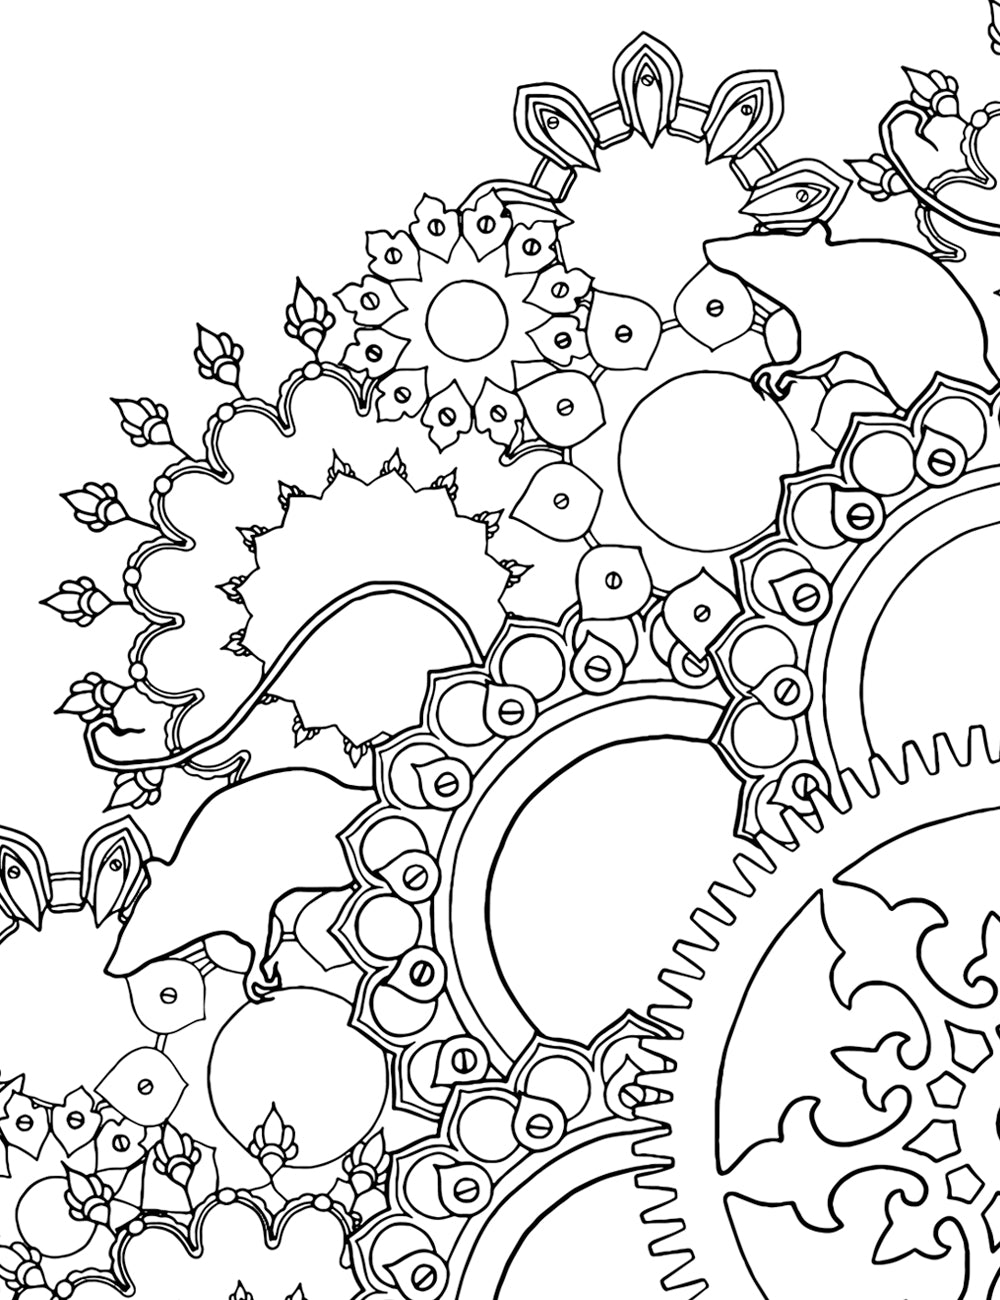 Asylum Coloring Book Page: Rat Mandala